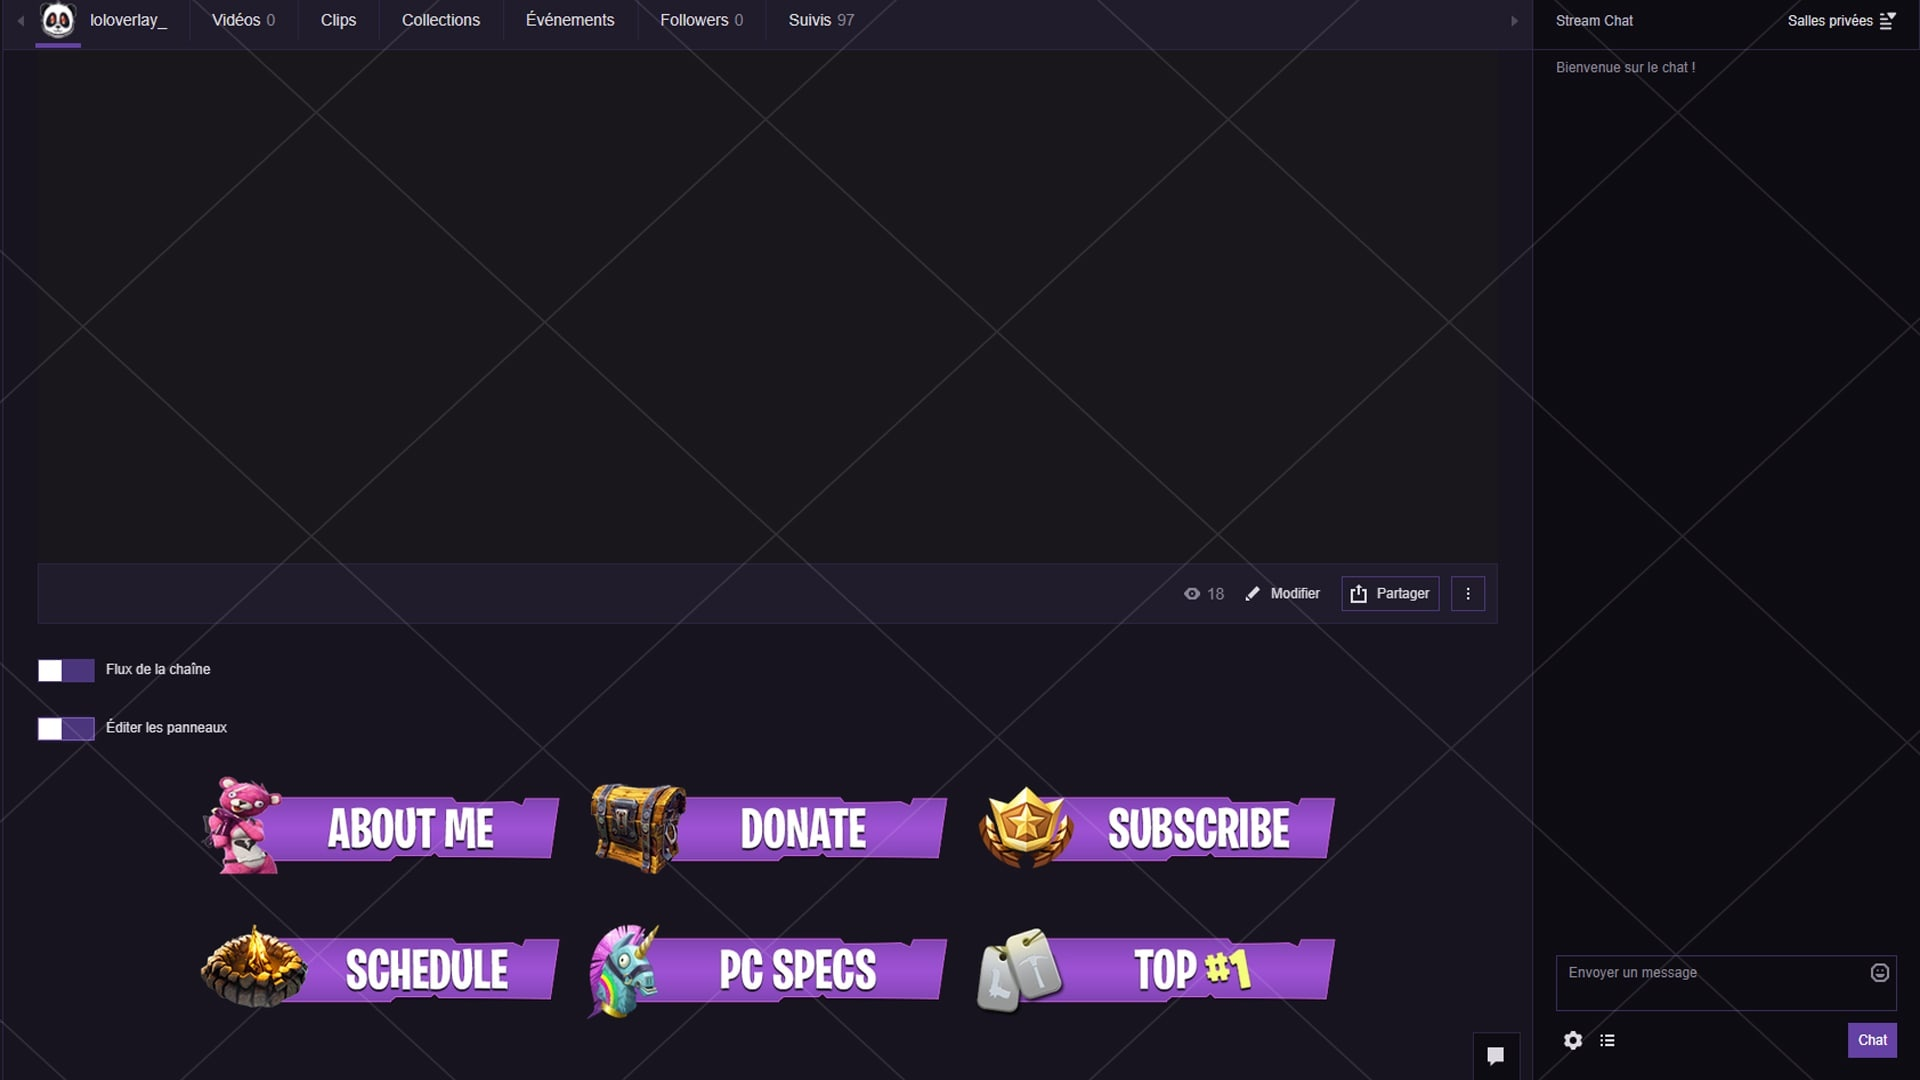 [PURPLE] FORTNITE - TWITCH PANELS (22 PNG)